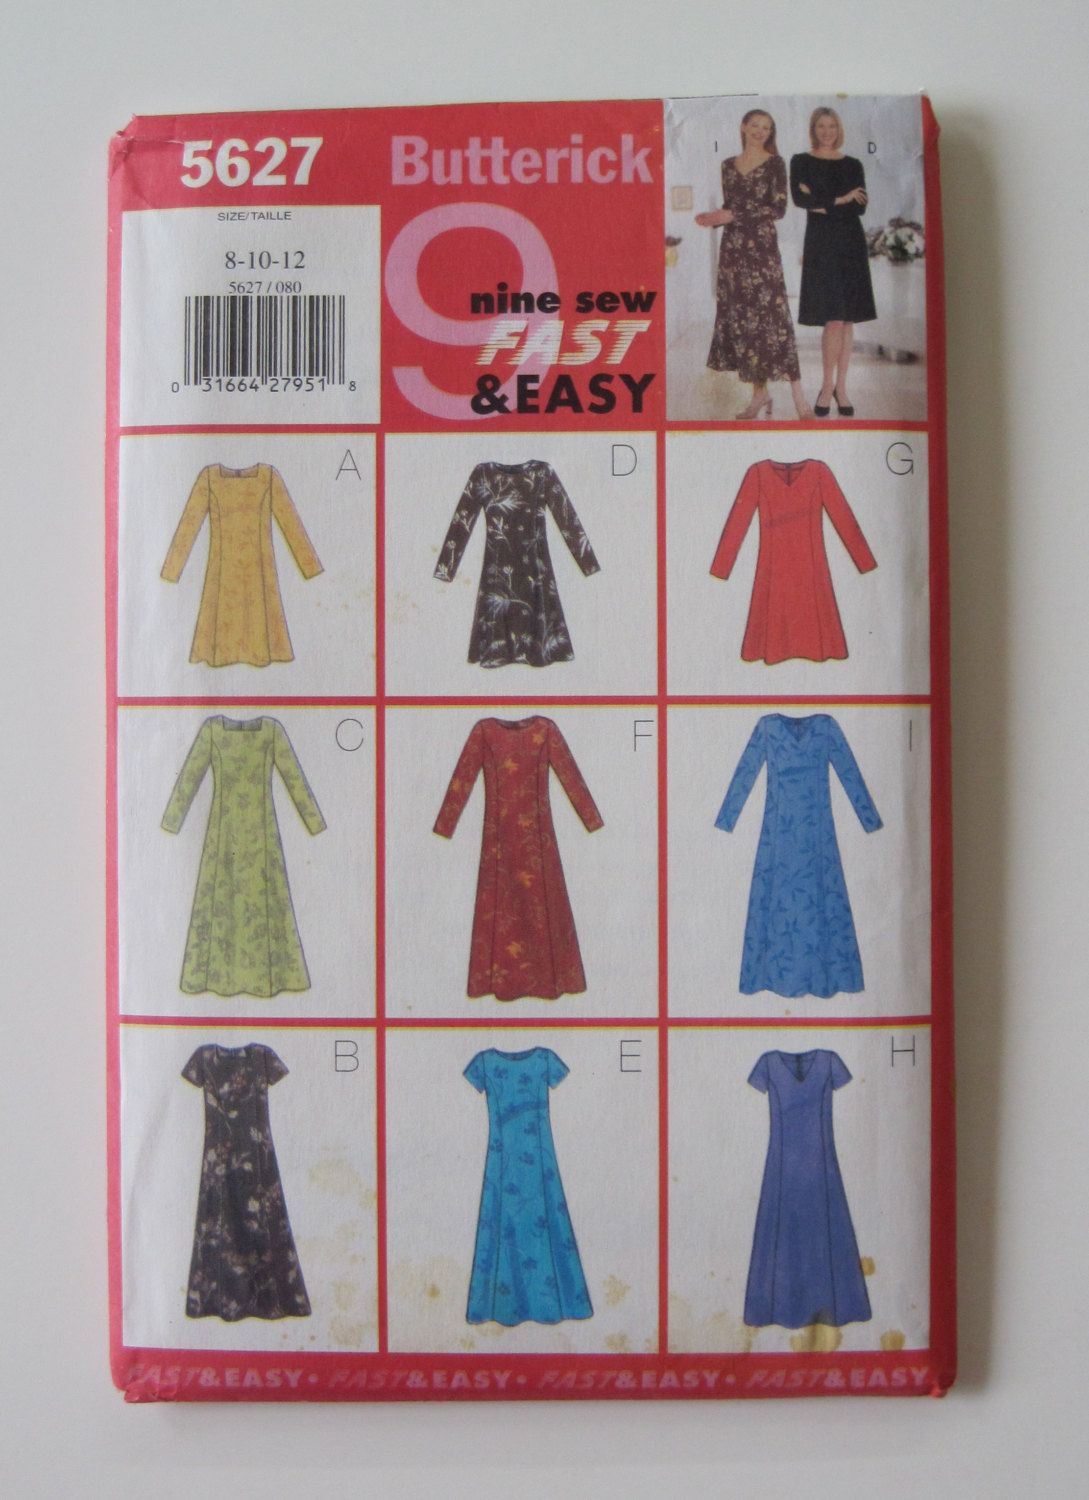 Hardtofind pattern in excellent condition u butterick b dress